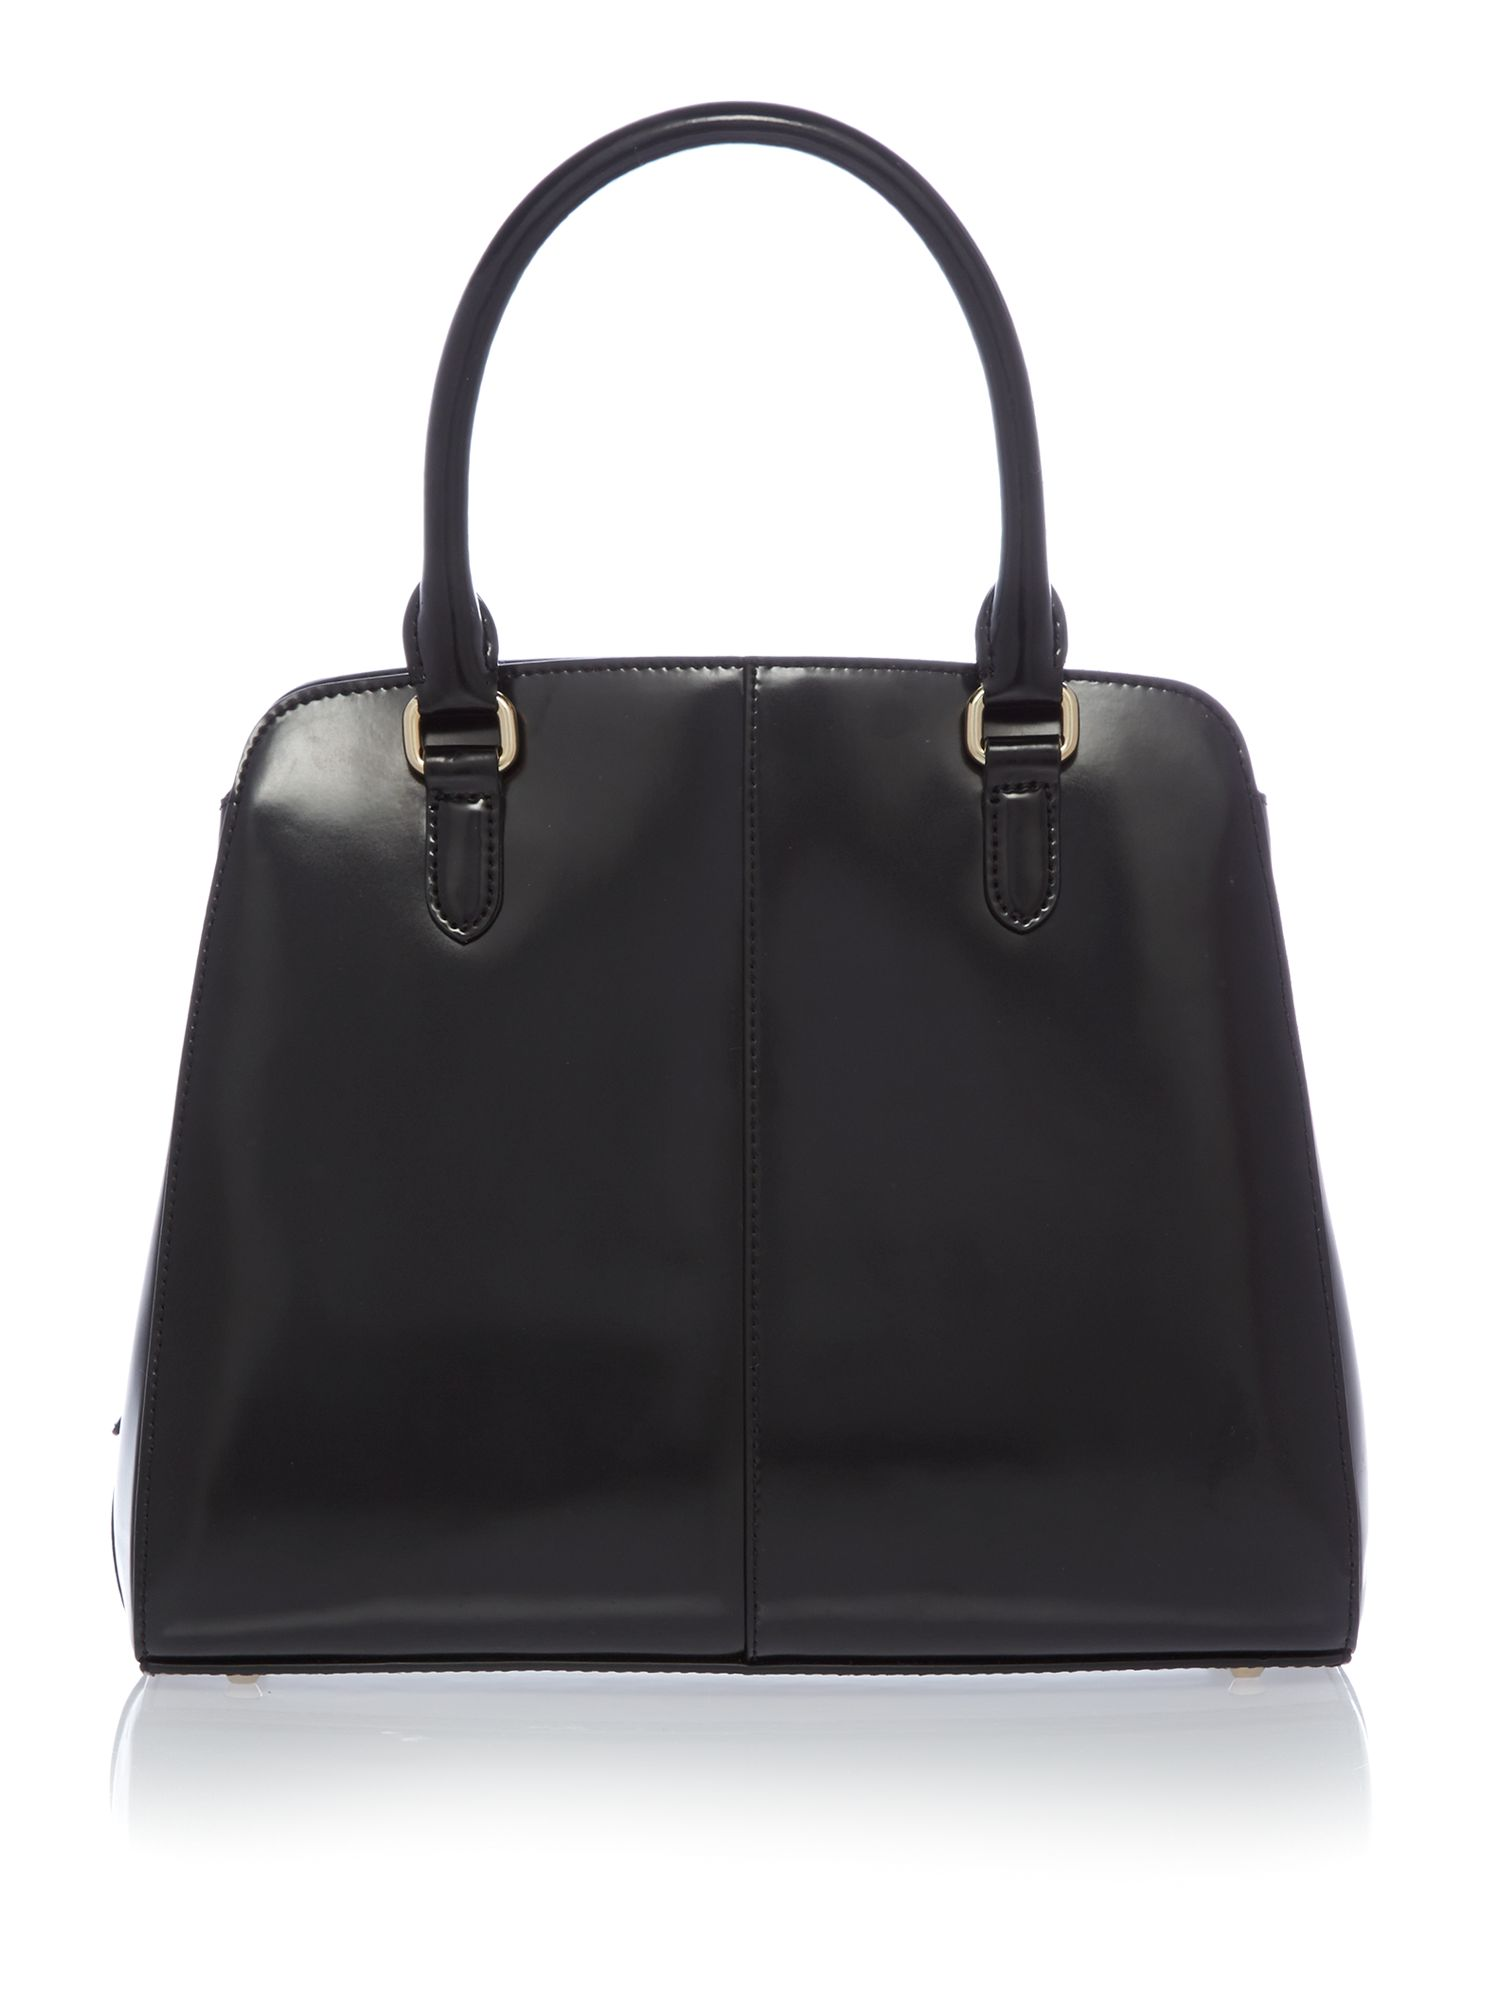 Hudson black large tote bag